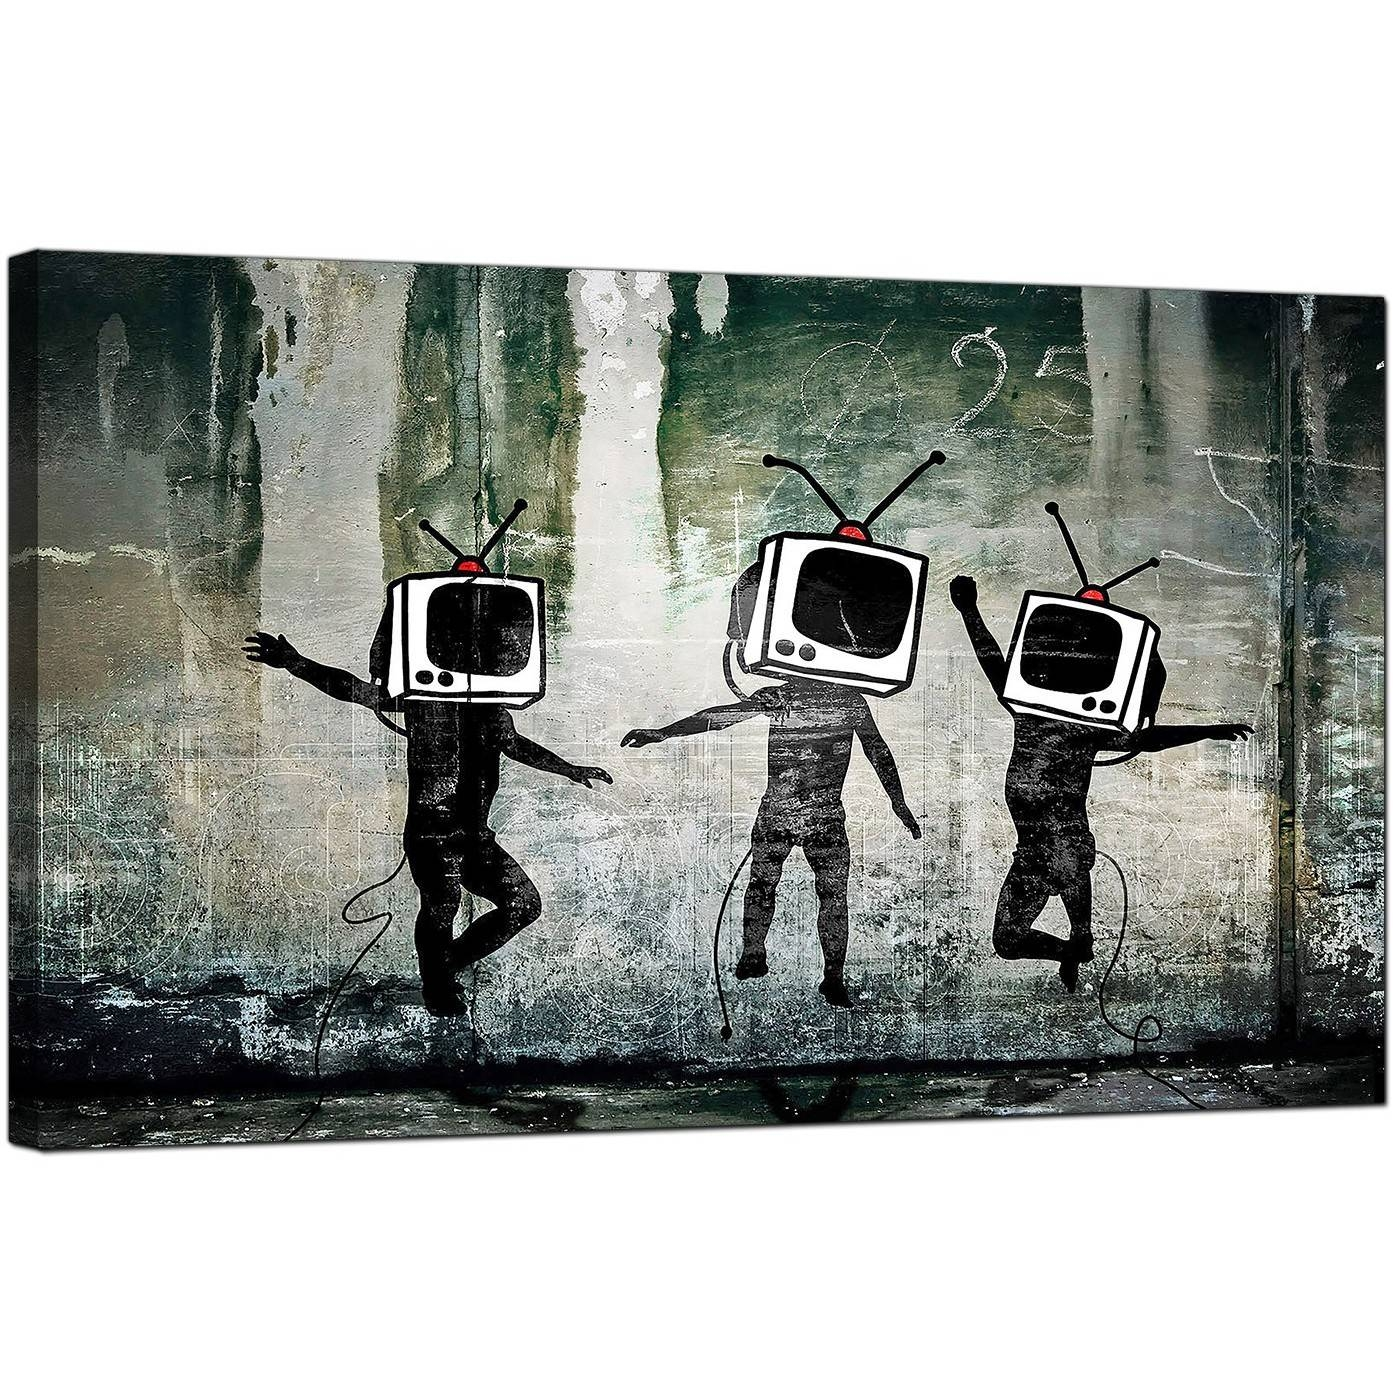 Banksy Canvas Wall Art – Wall Murals Ideas With Regard To Current Banksy Wall Art Canvas (View 5 of 20)